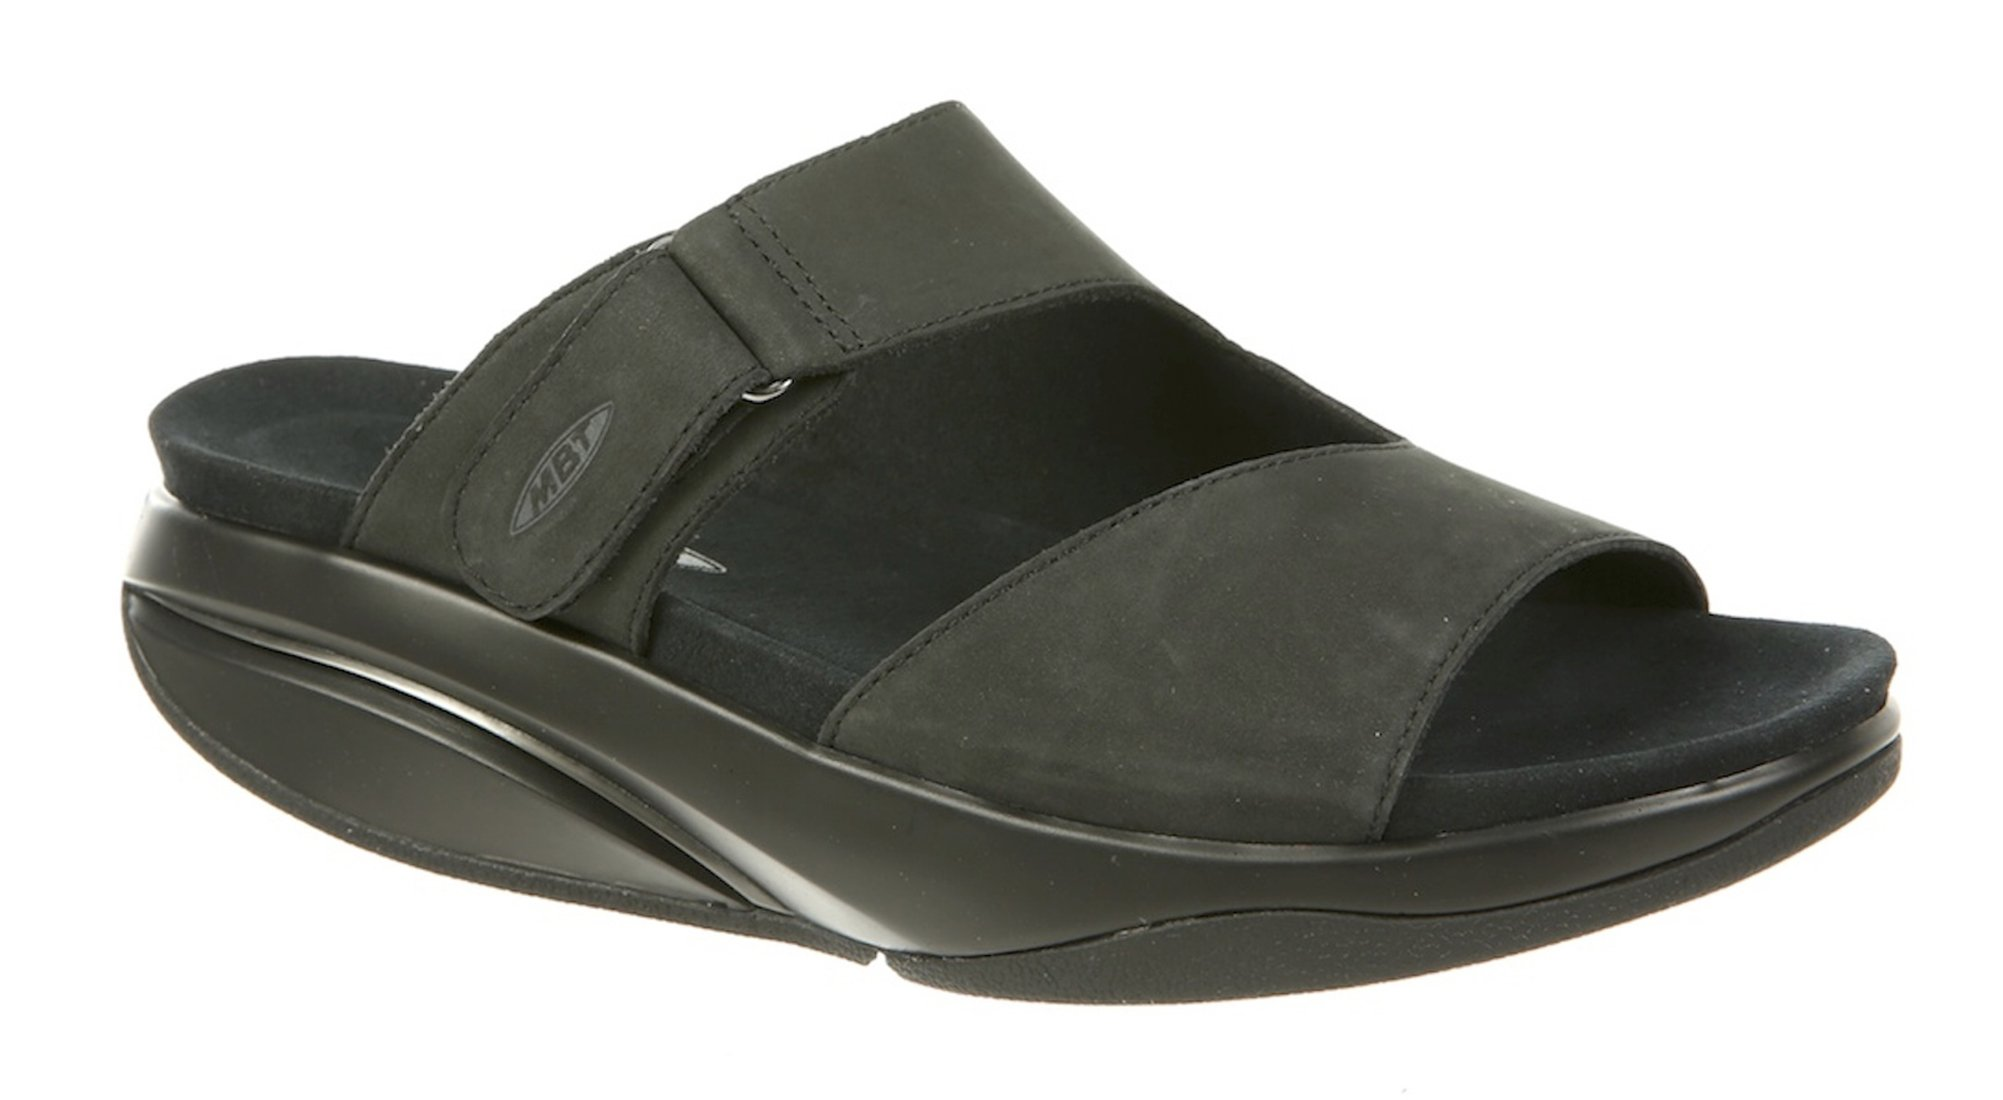 MBT Shoes Women's Tabia Sandal: Black/Nubuck 10 Medium (B) Velcro